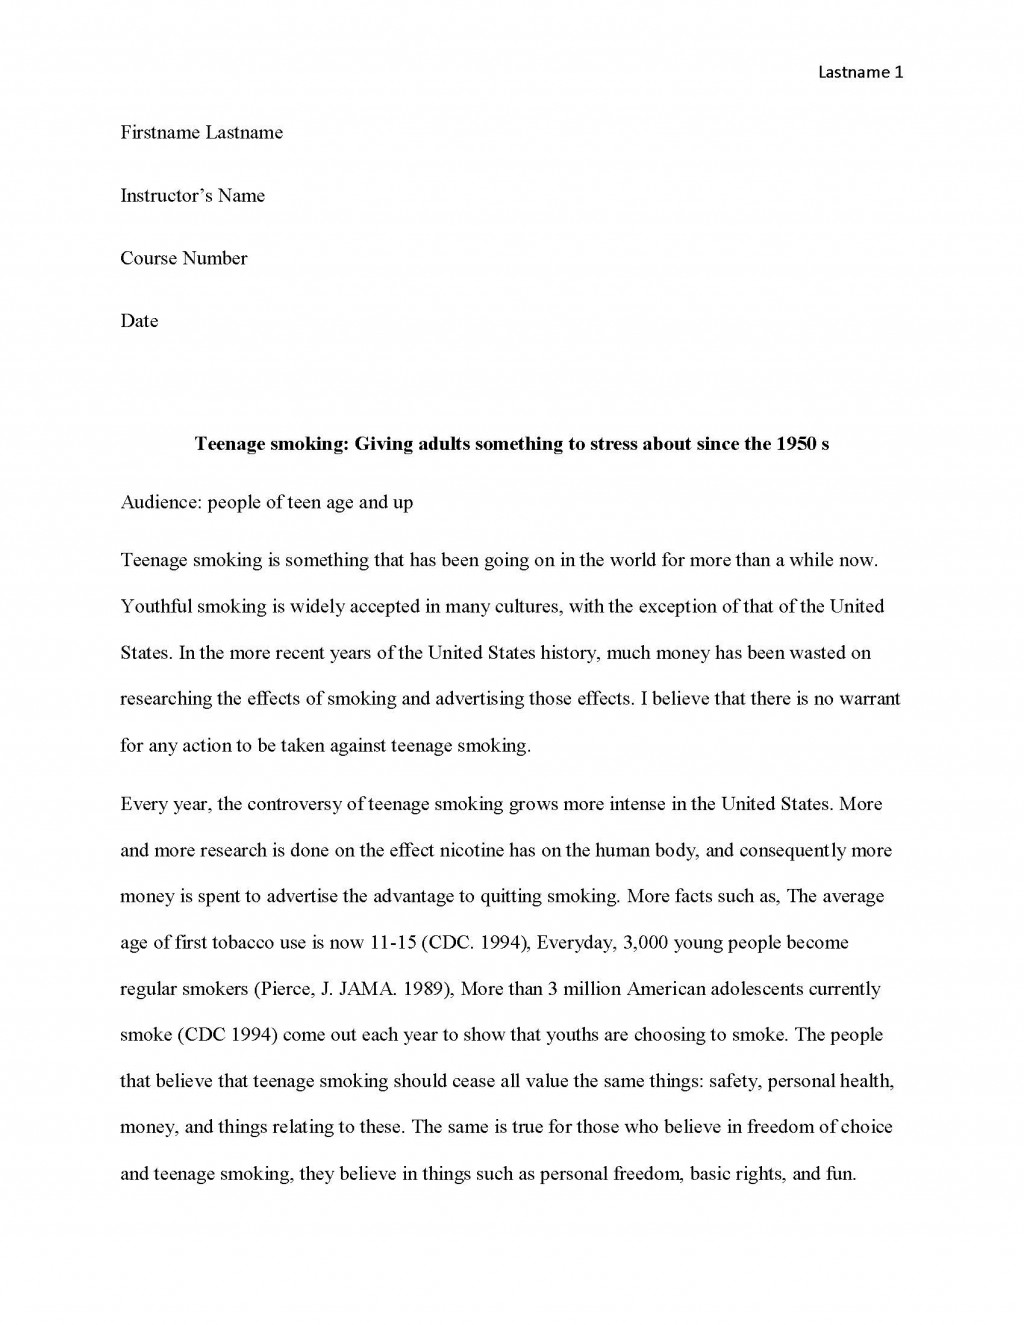 002 Teen Smoking Free Sample Page 1 Research Paper Online Fearsome Papers Journals Download Read Large